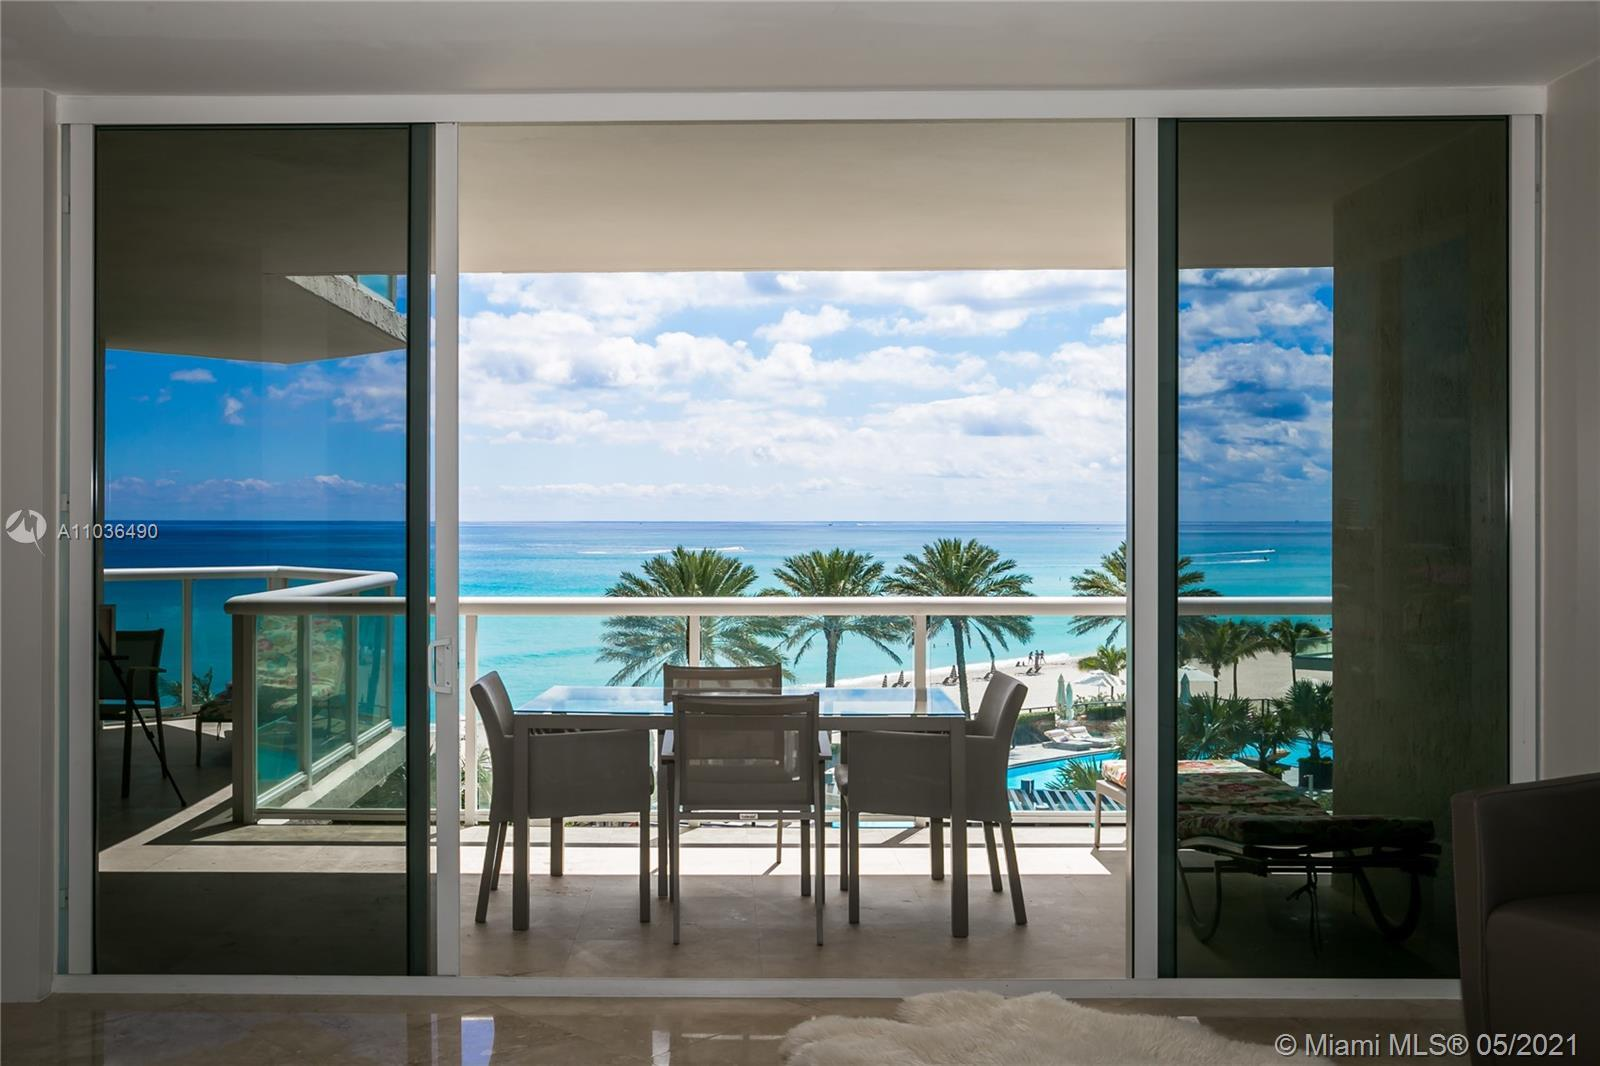 Come live the dream beachfront life! have your breakfast on your spacious wraparound balcony looking